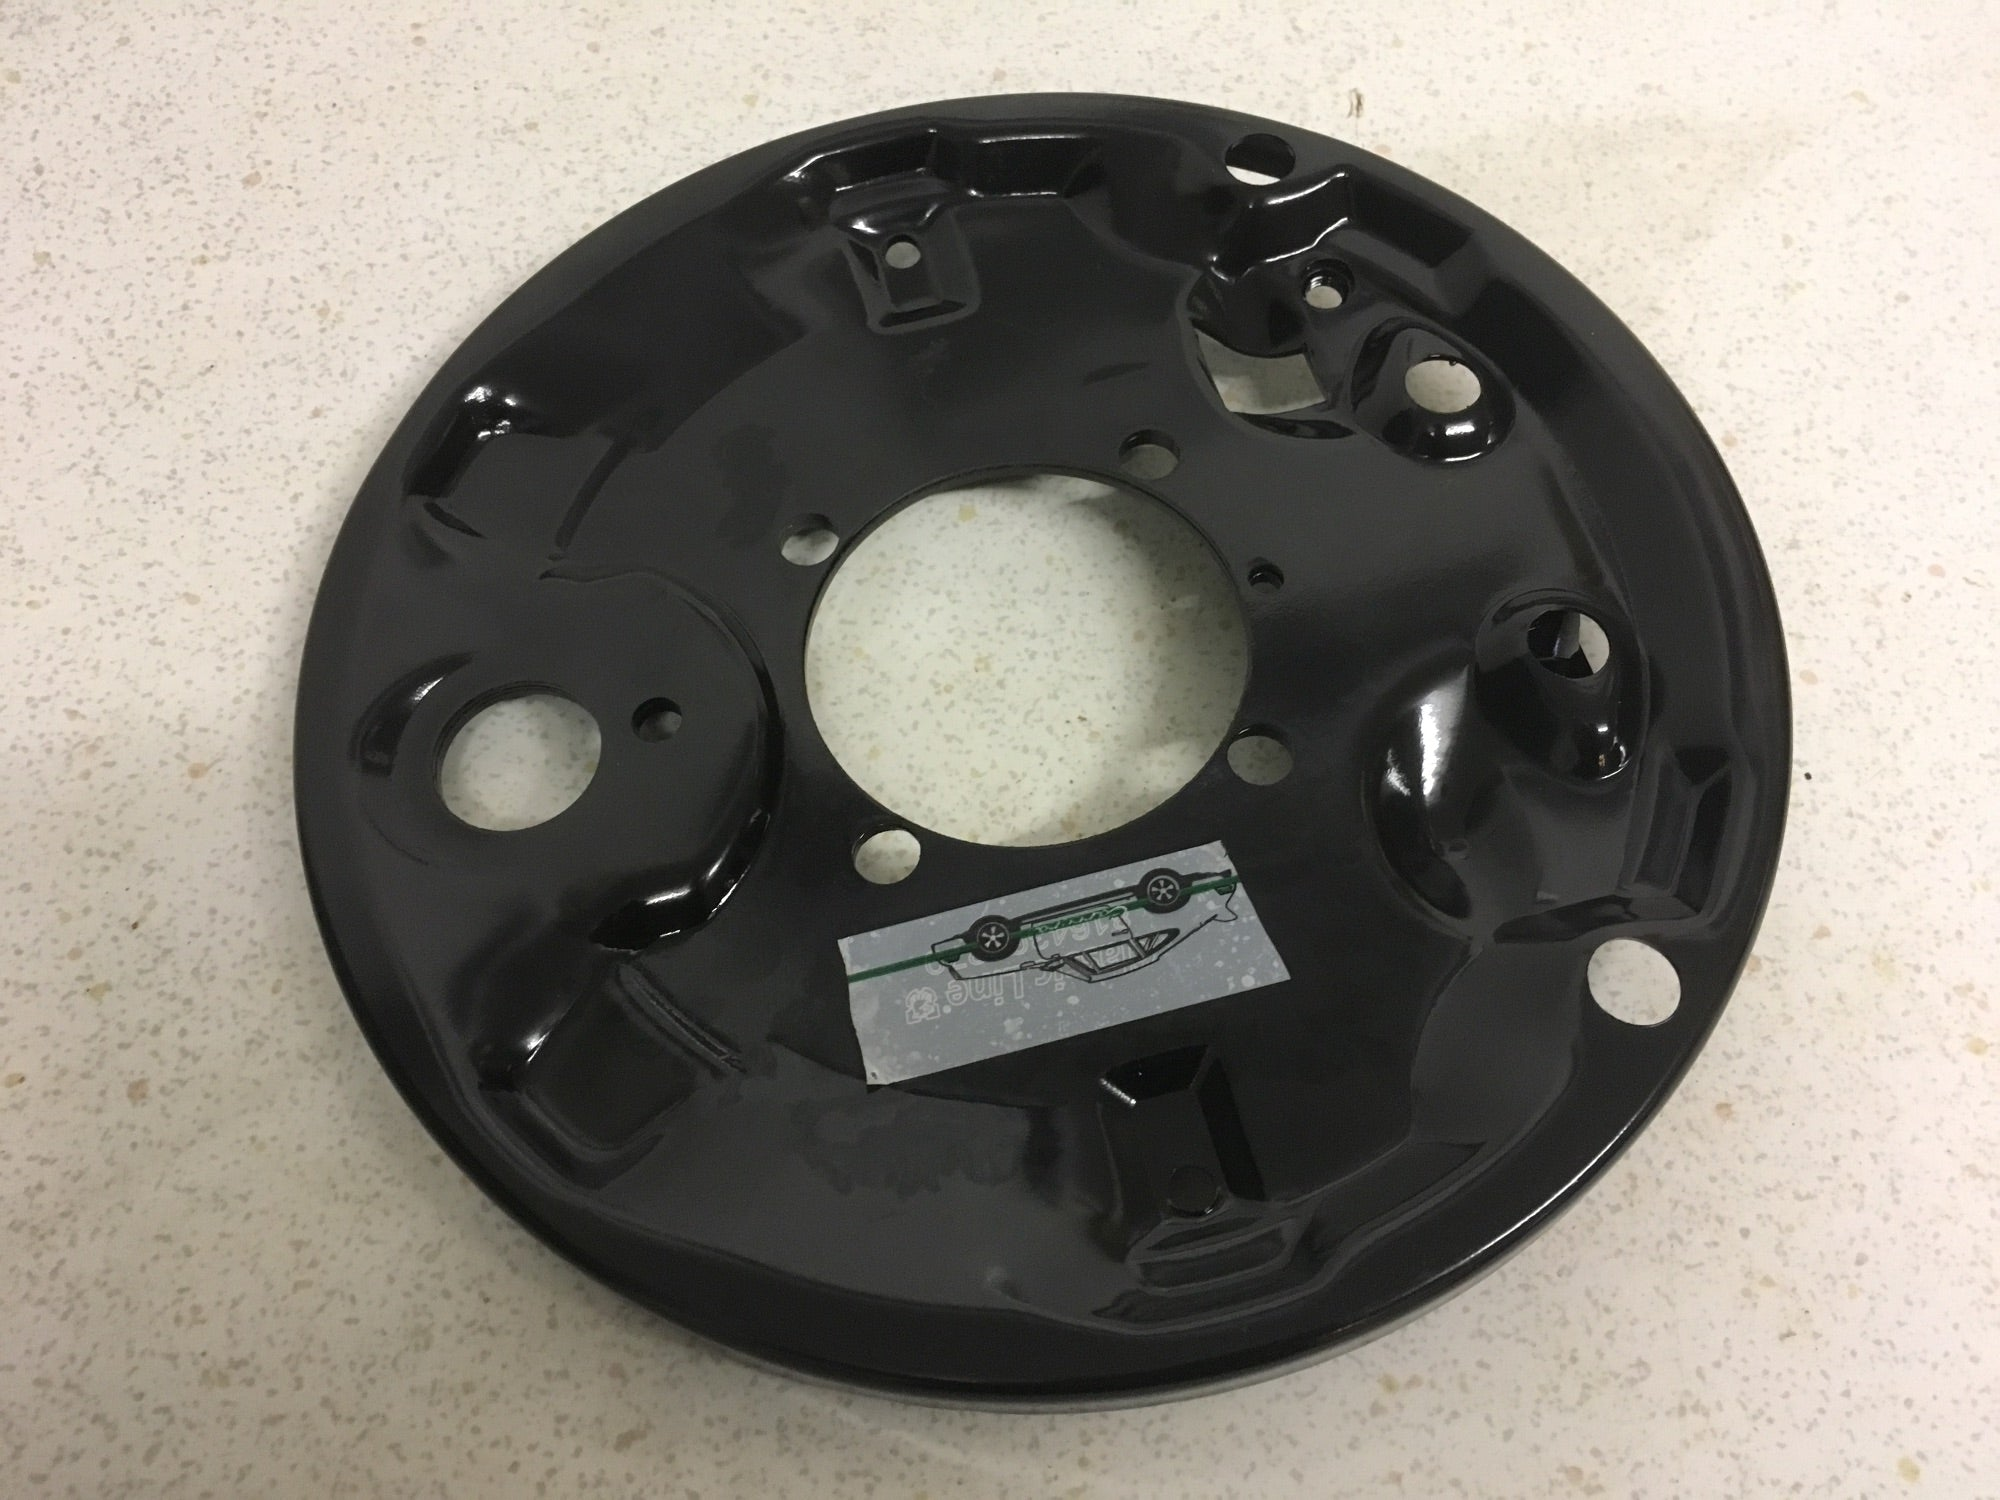 Porsche 924 rear brake backing plate (4 stud 2.0 car) LEFT 113 609 439 Bay 22 Shelf B - Woolies Workshop - Porsche 924 944 spares